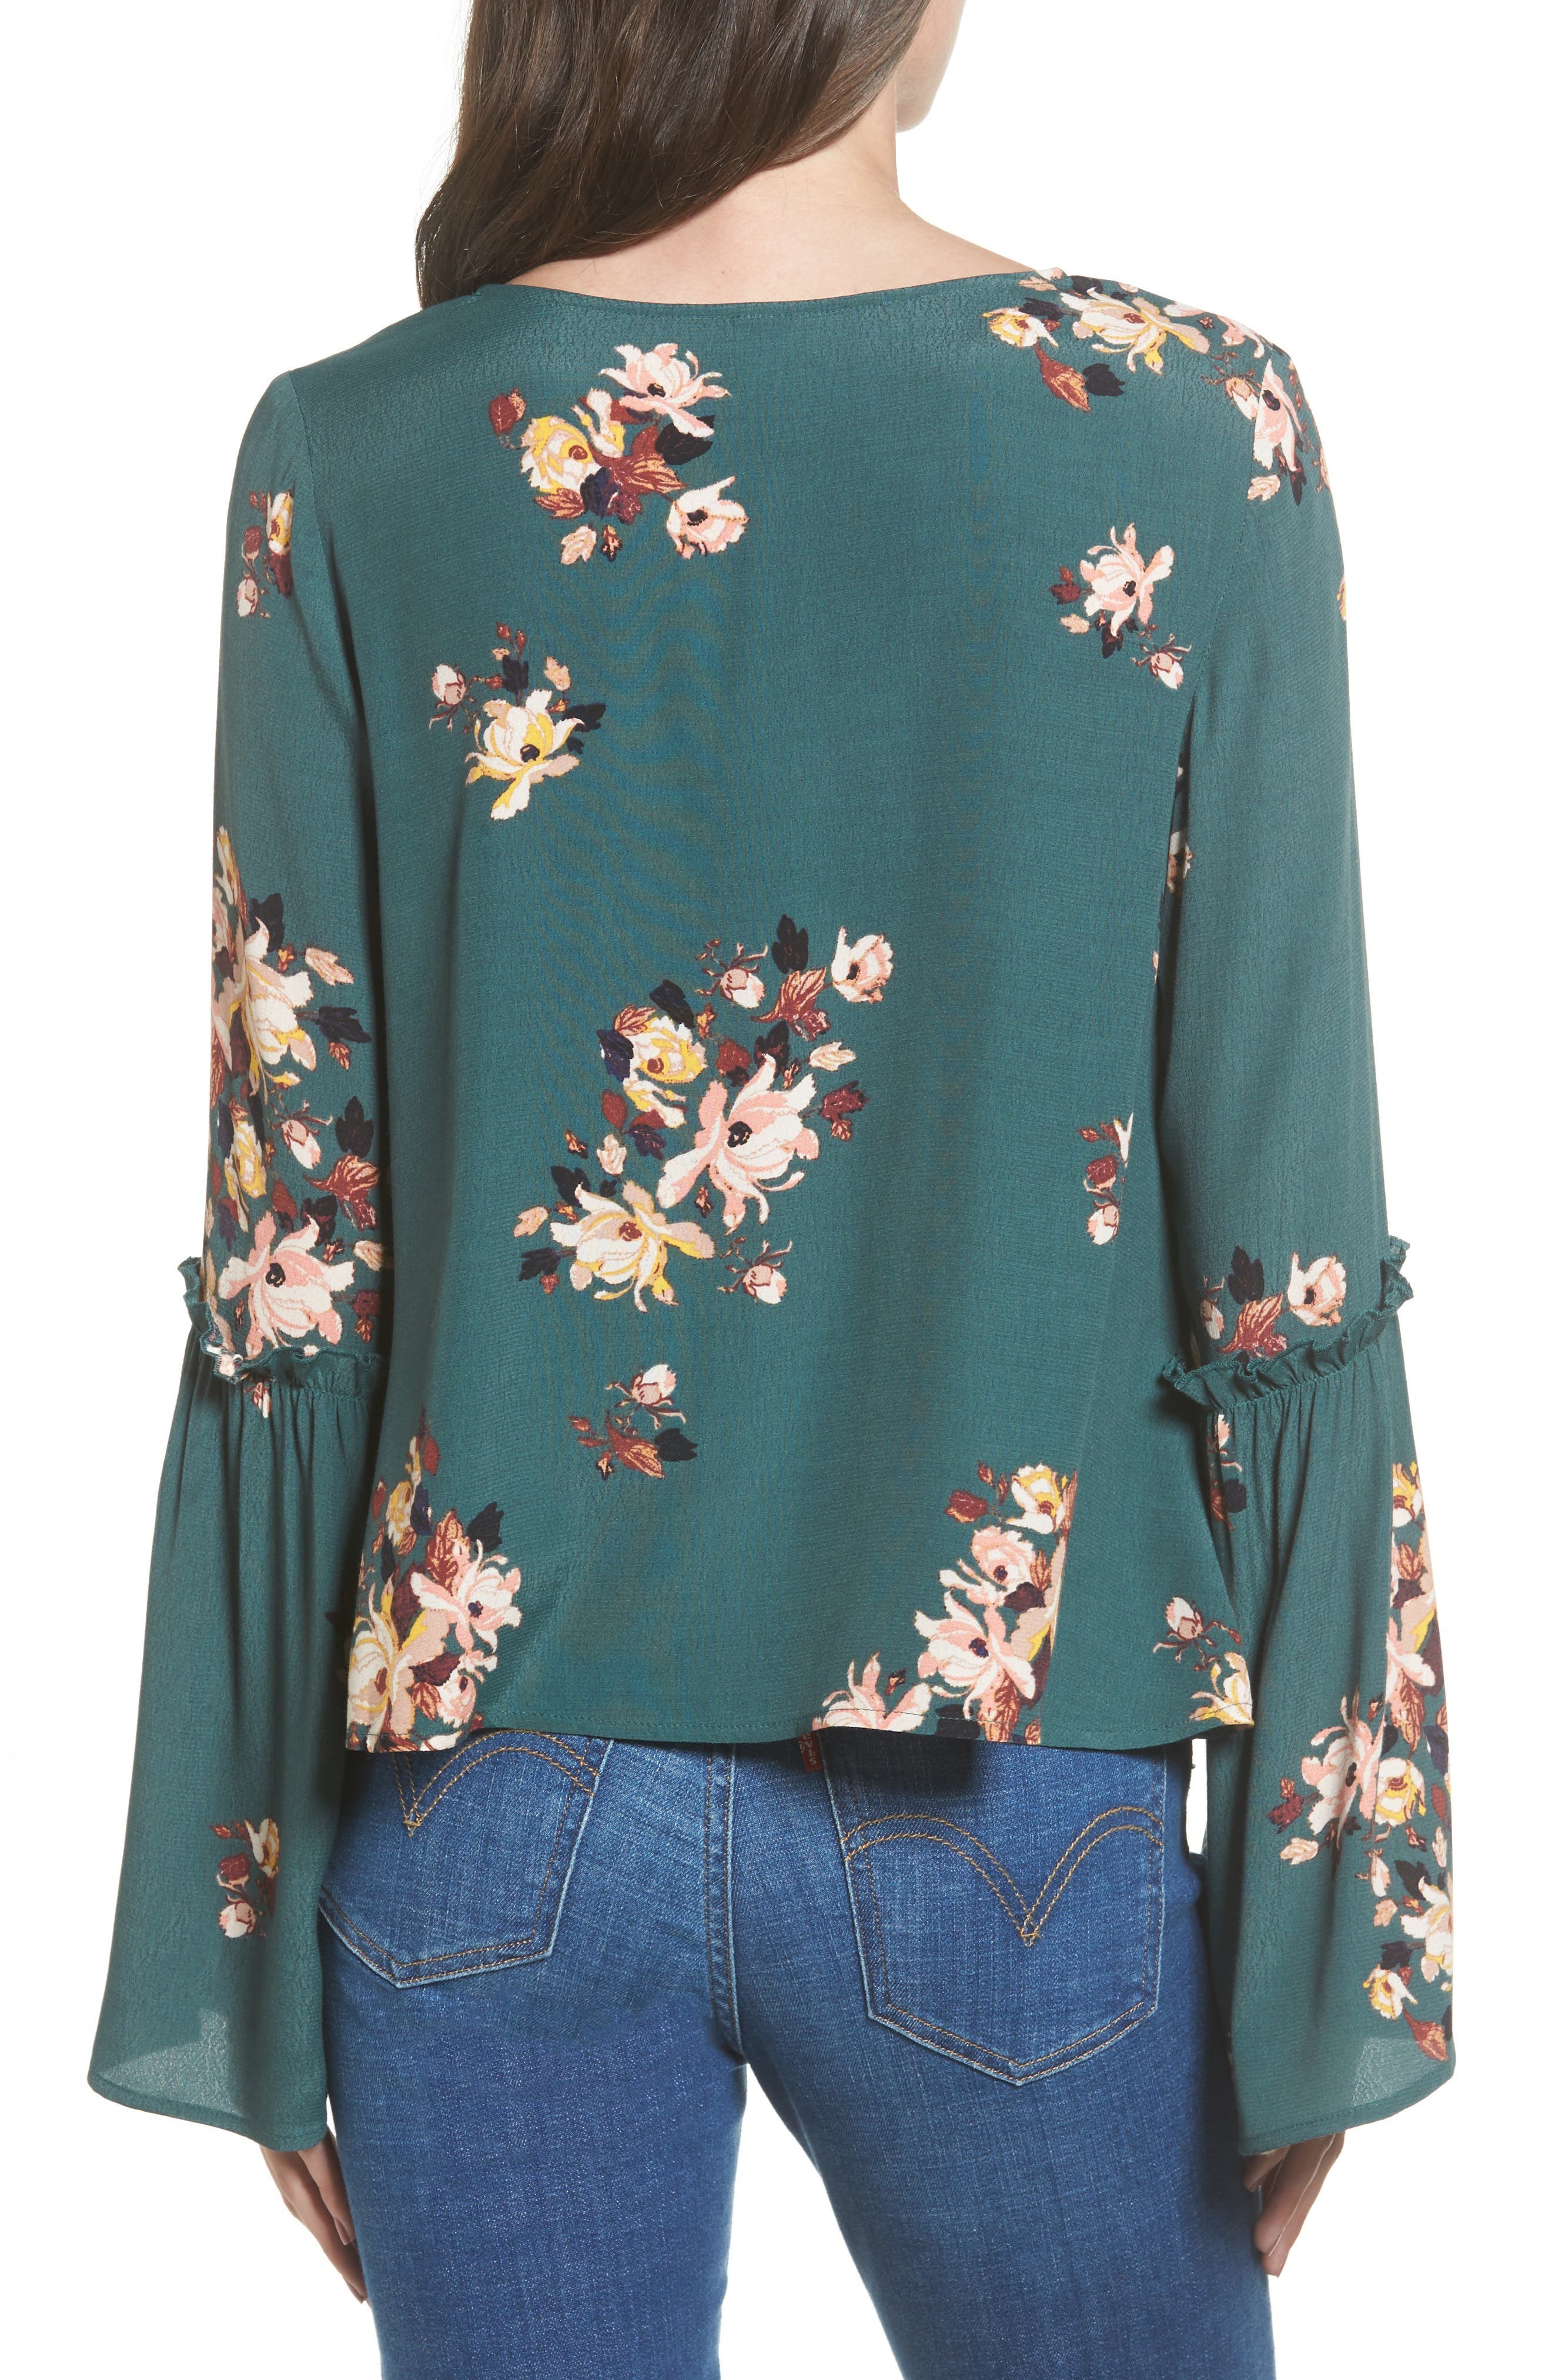 Bell Sleeve Blouse,                             Alternate thumbnail 2, color,                             Green Jungle Floral Bouquet